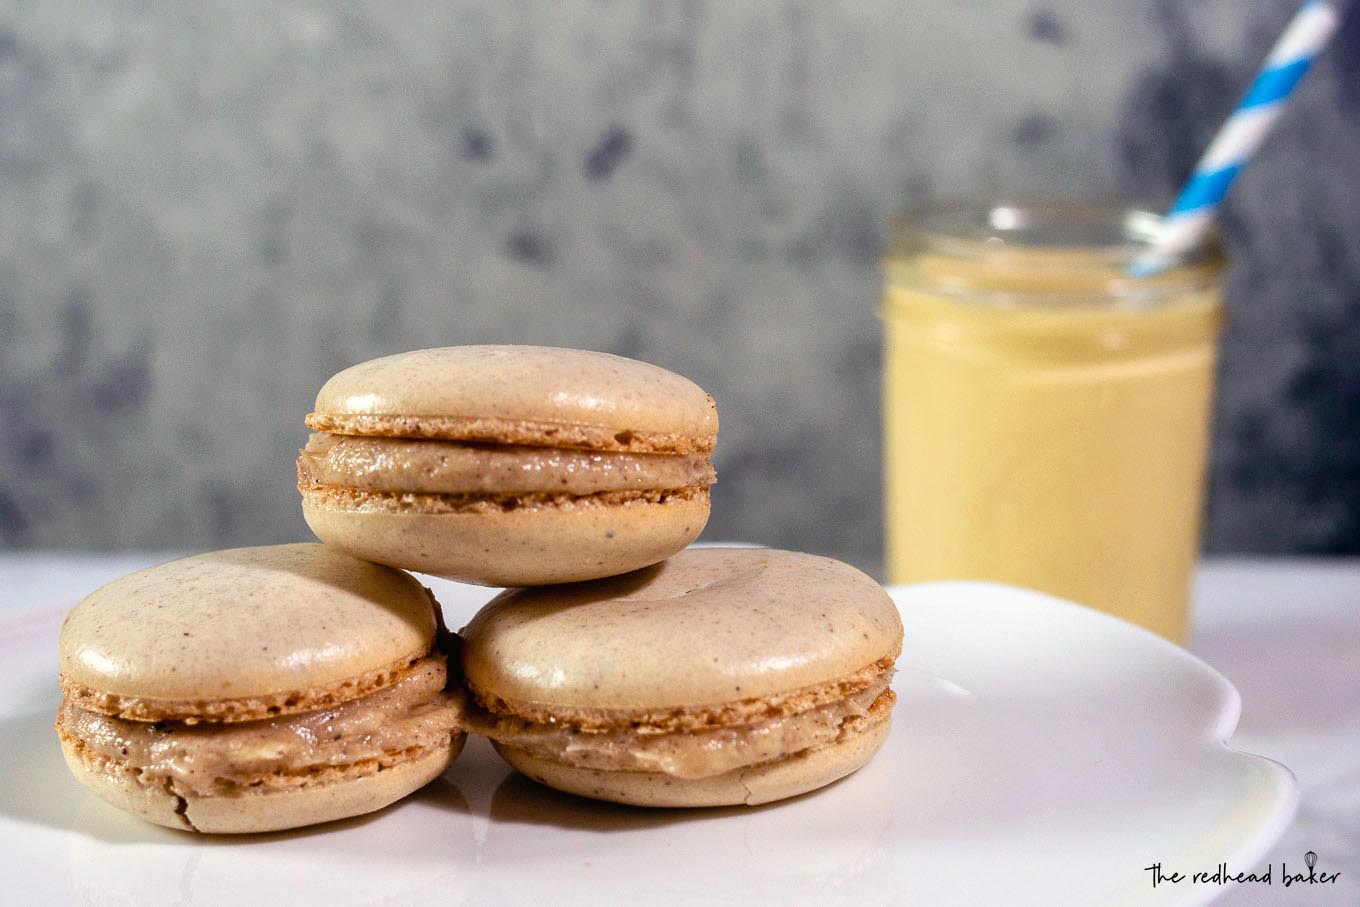 Three eggnog macarons on a cake plate in front of a mason jar of eggnog